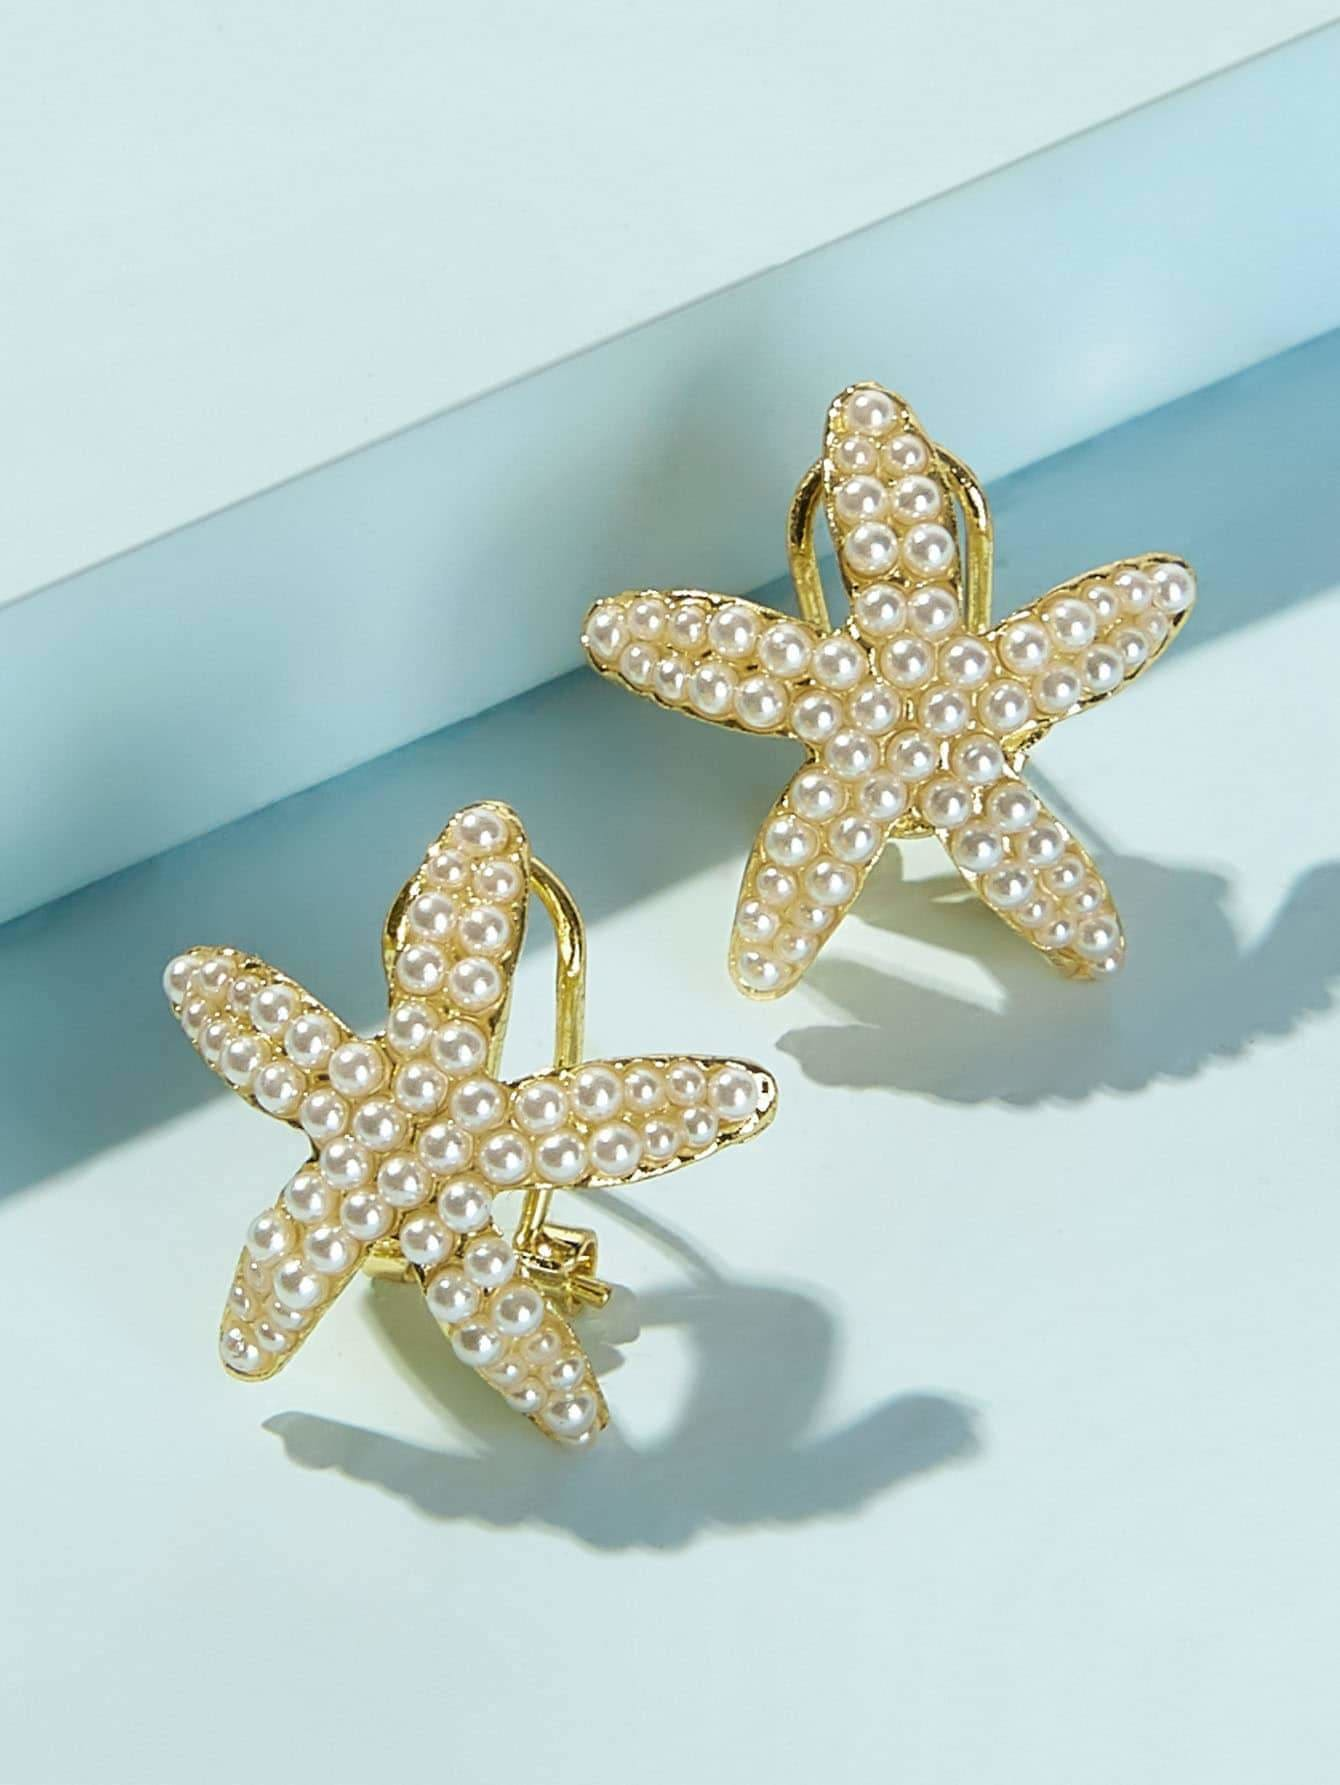 Faux Pearl Decor Starfish Stud Earrings 1pair